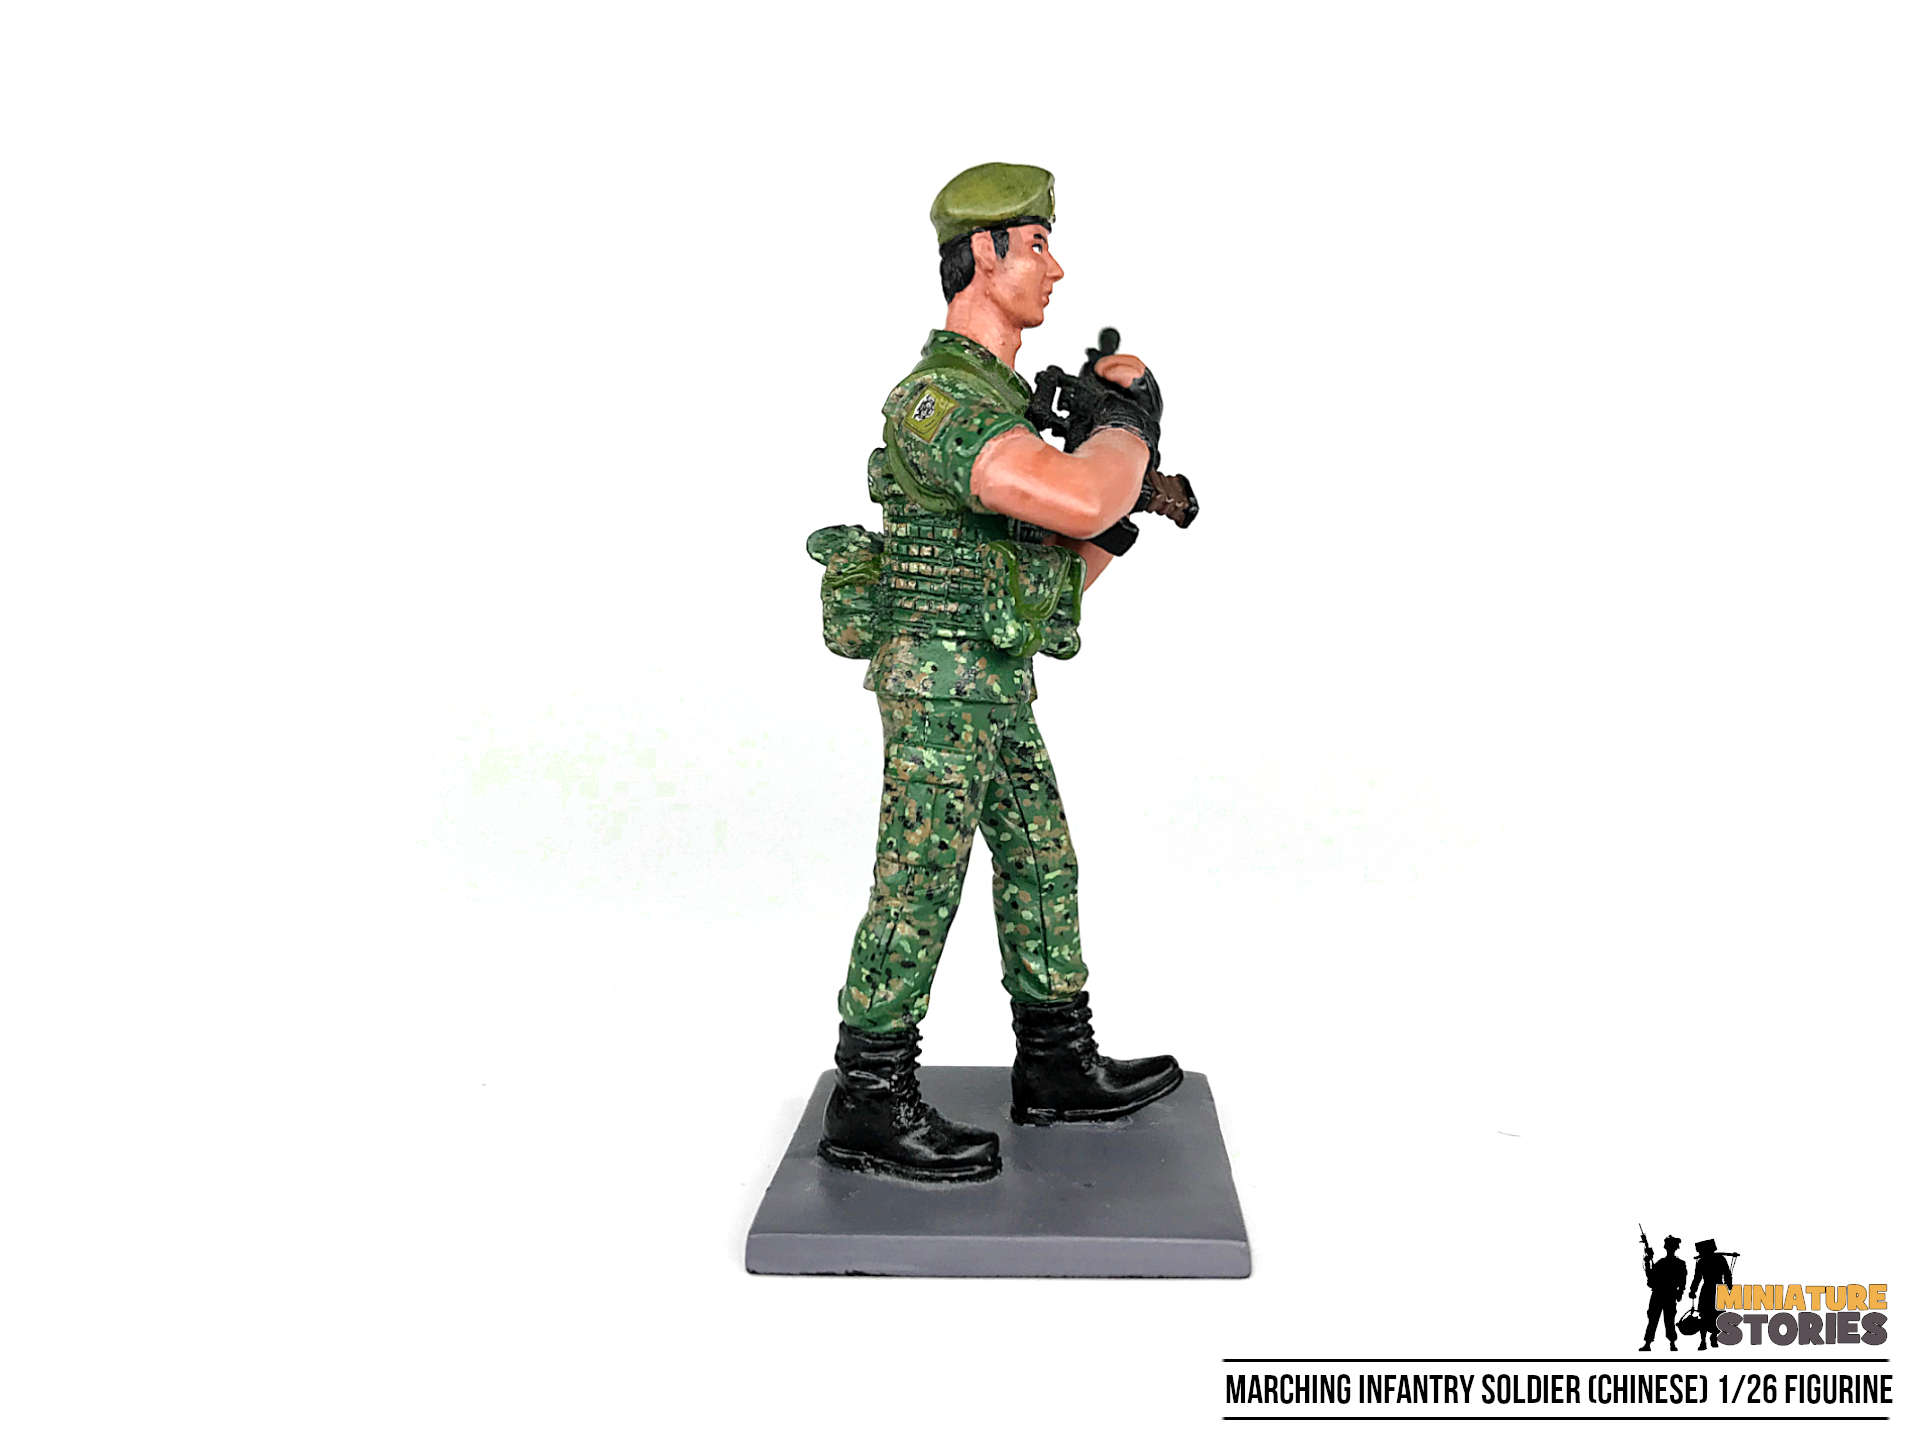 Marching Singapore Army Guards Soldier Figurine (right)